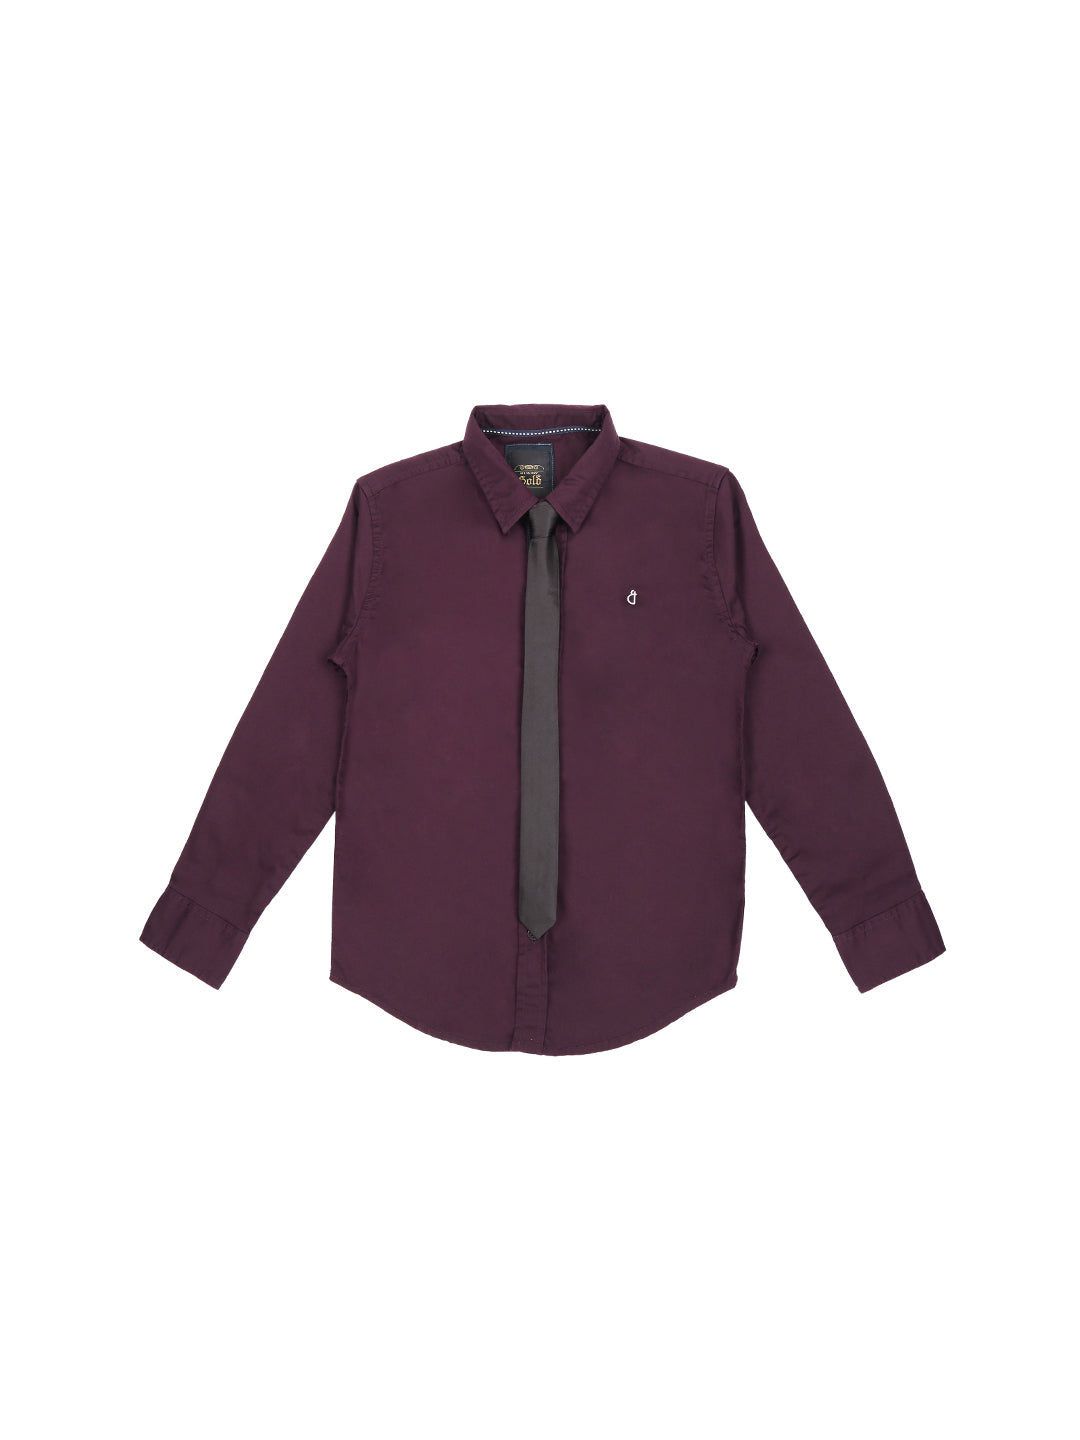 Boysenberry Shirt